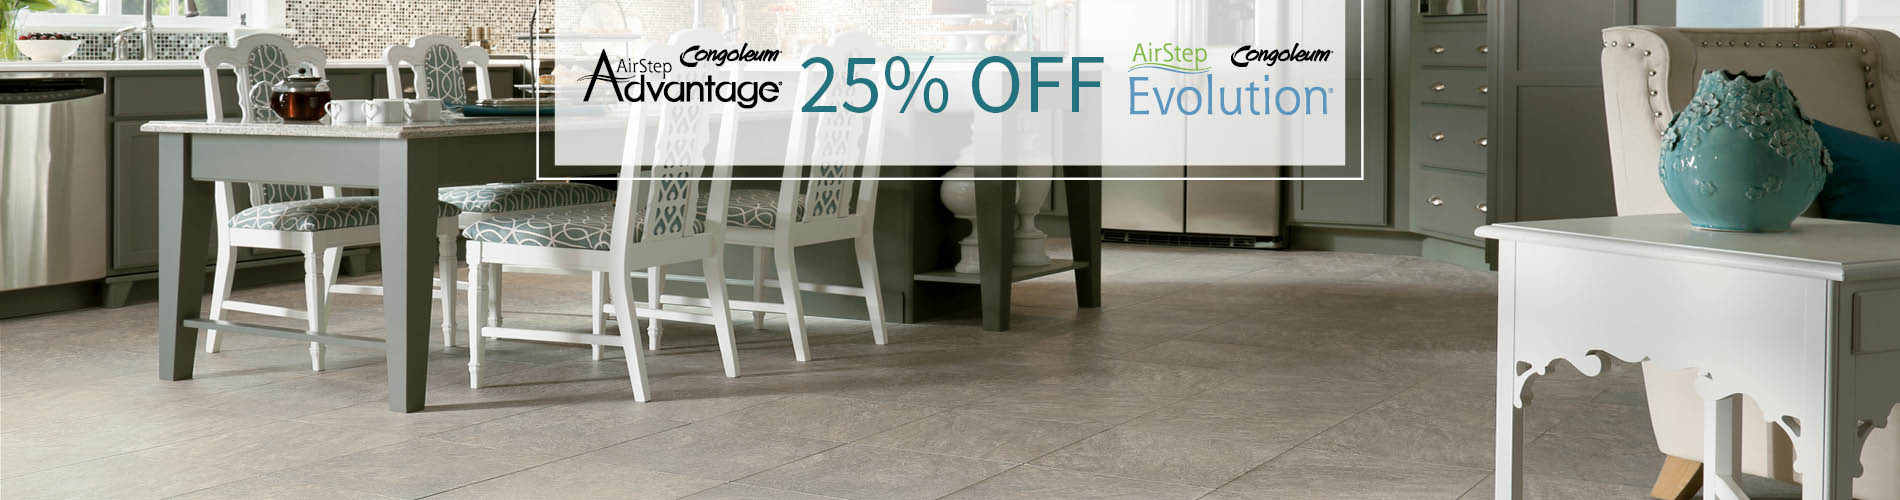 25% OFF Congoleum AirStep Advantage & AirStep Evolutions Floors!